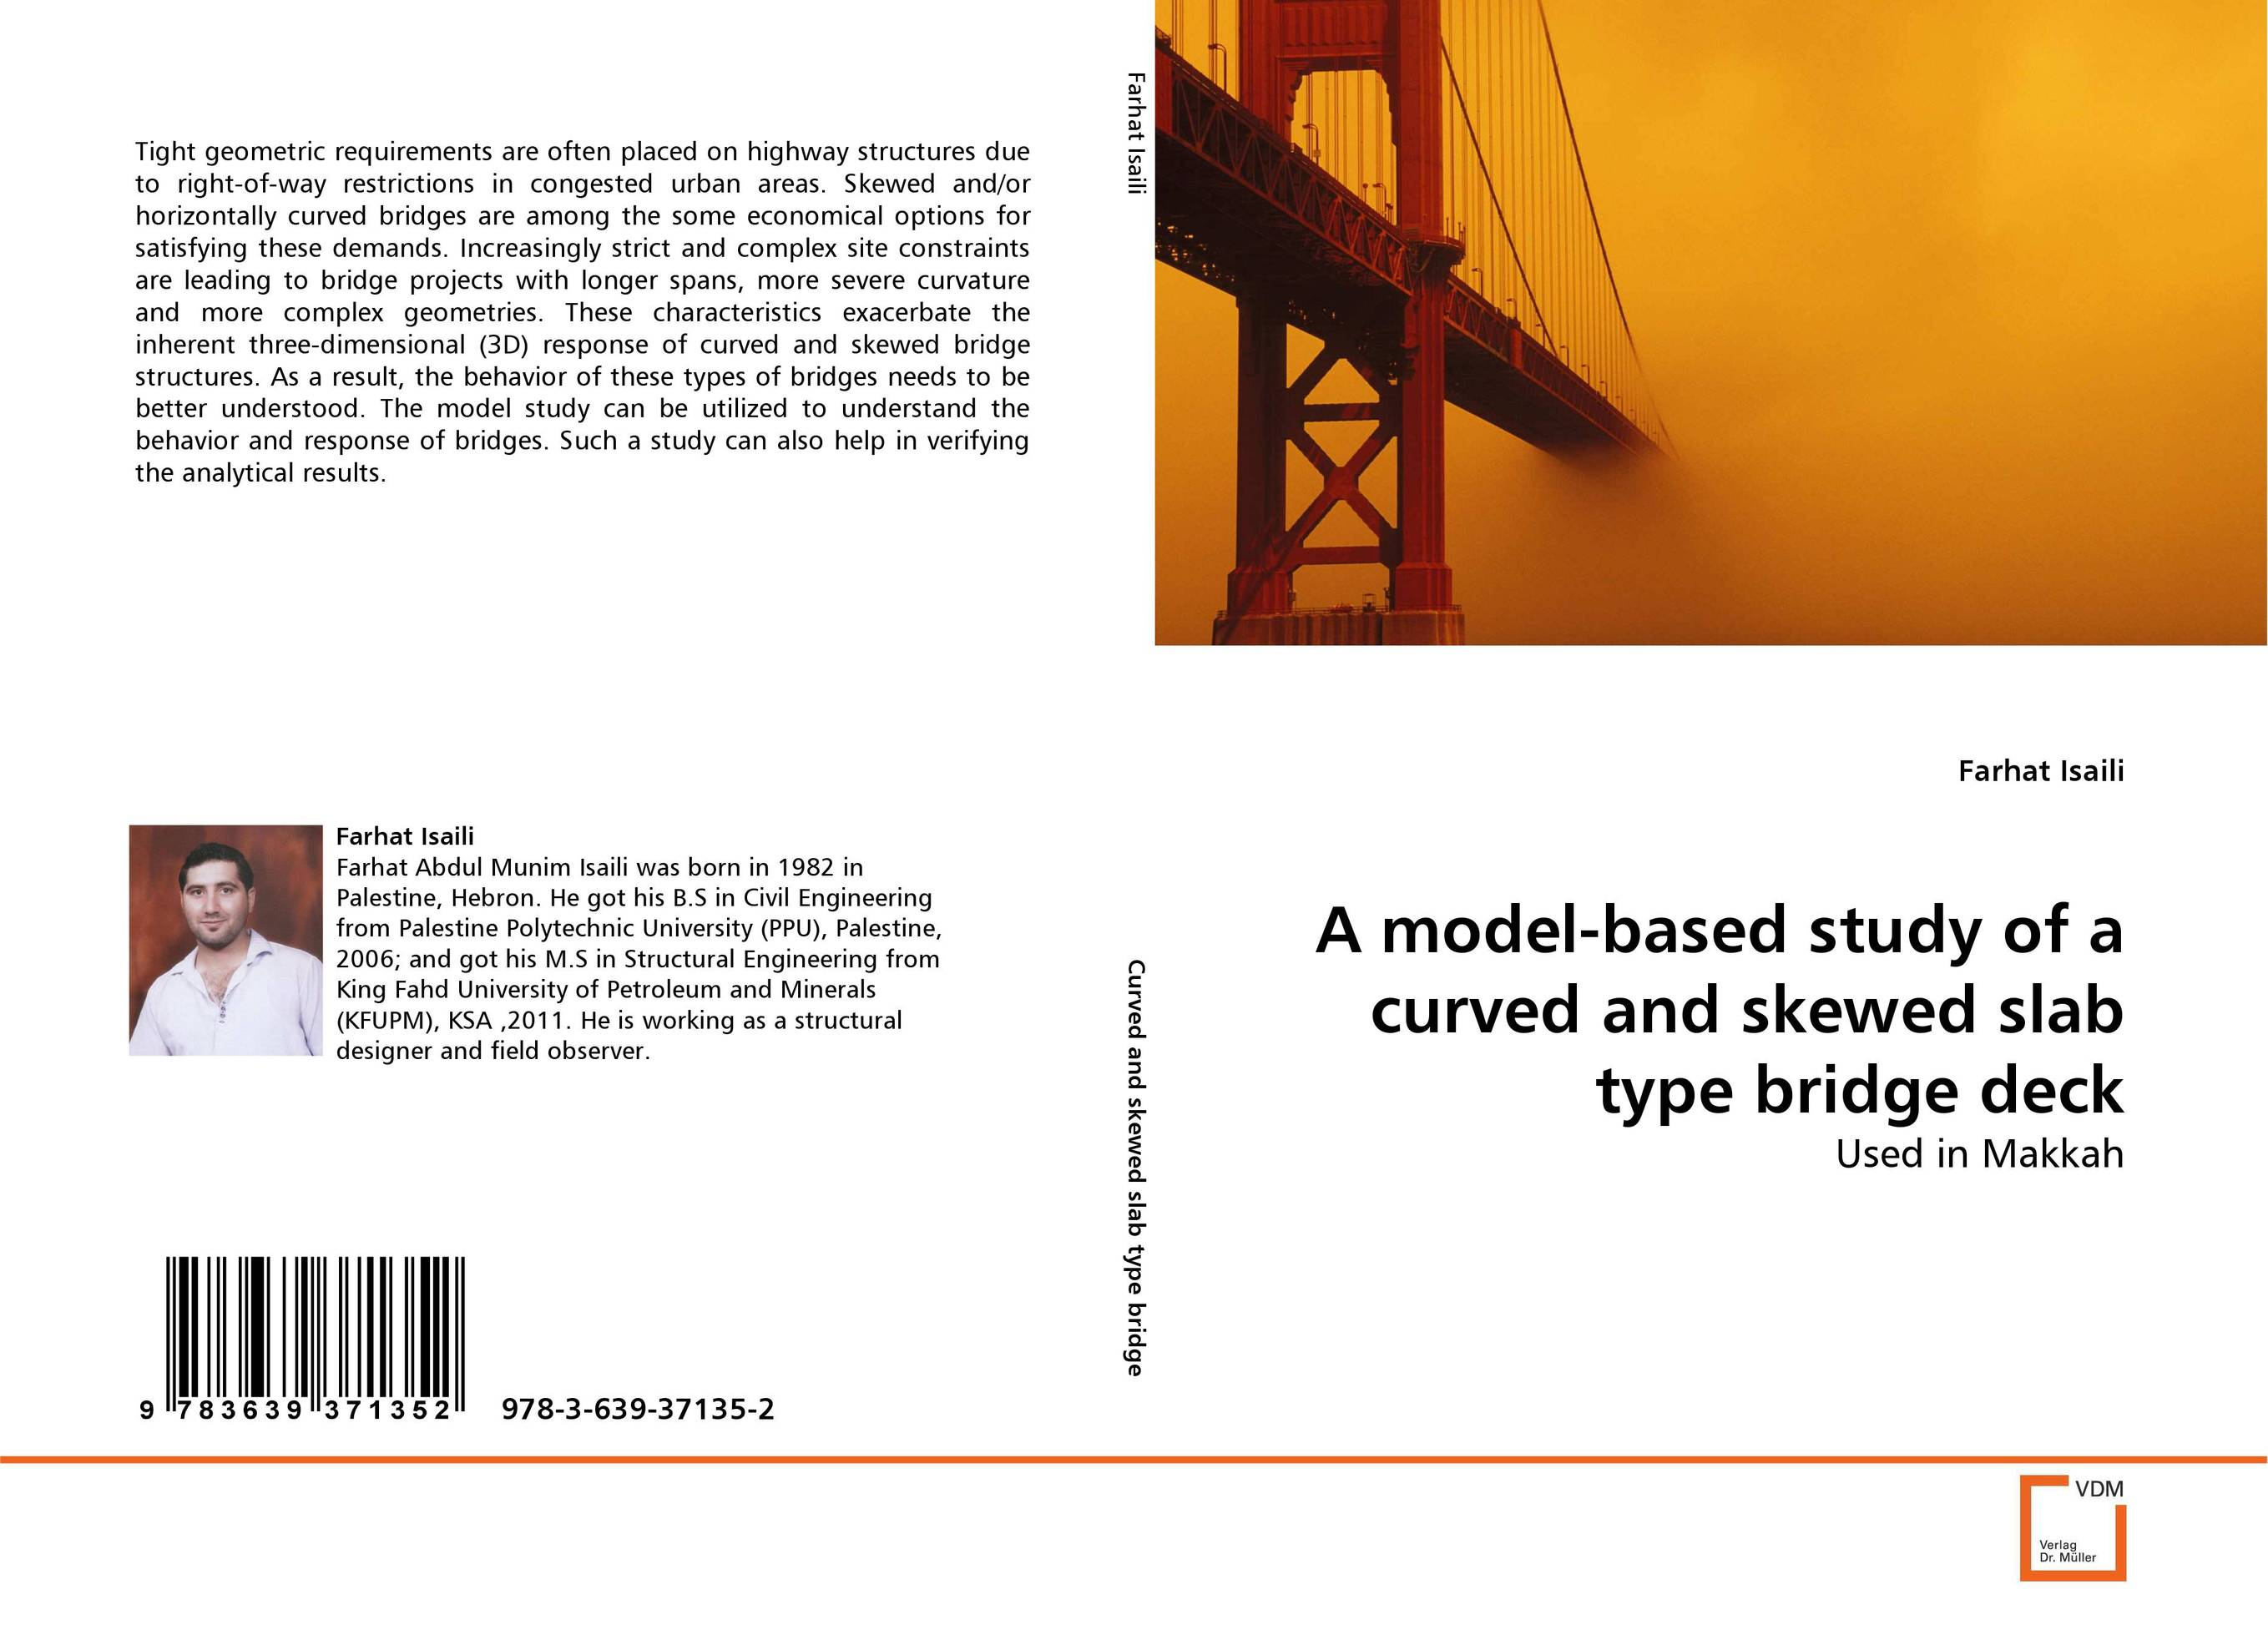 A model-based study of a curved and skewed slab type bridge deck strict democracy burning the bridges in politics